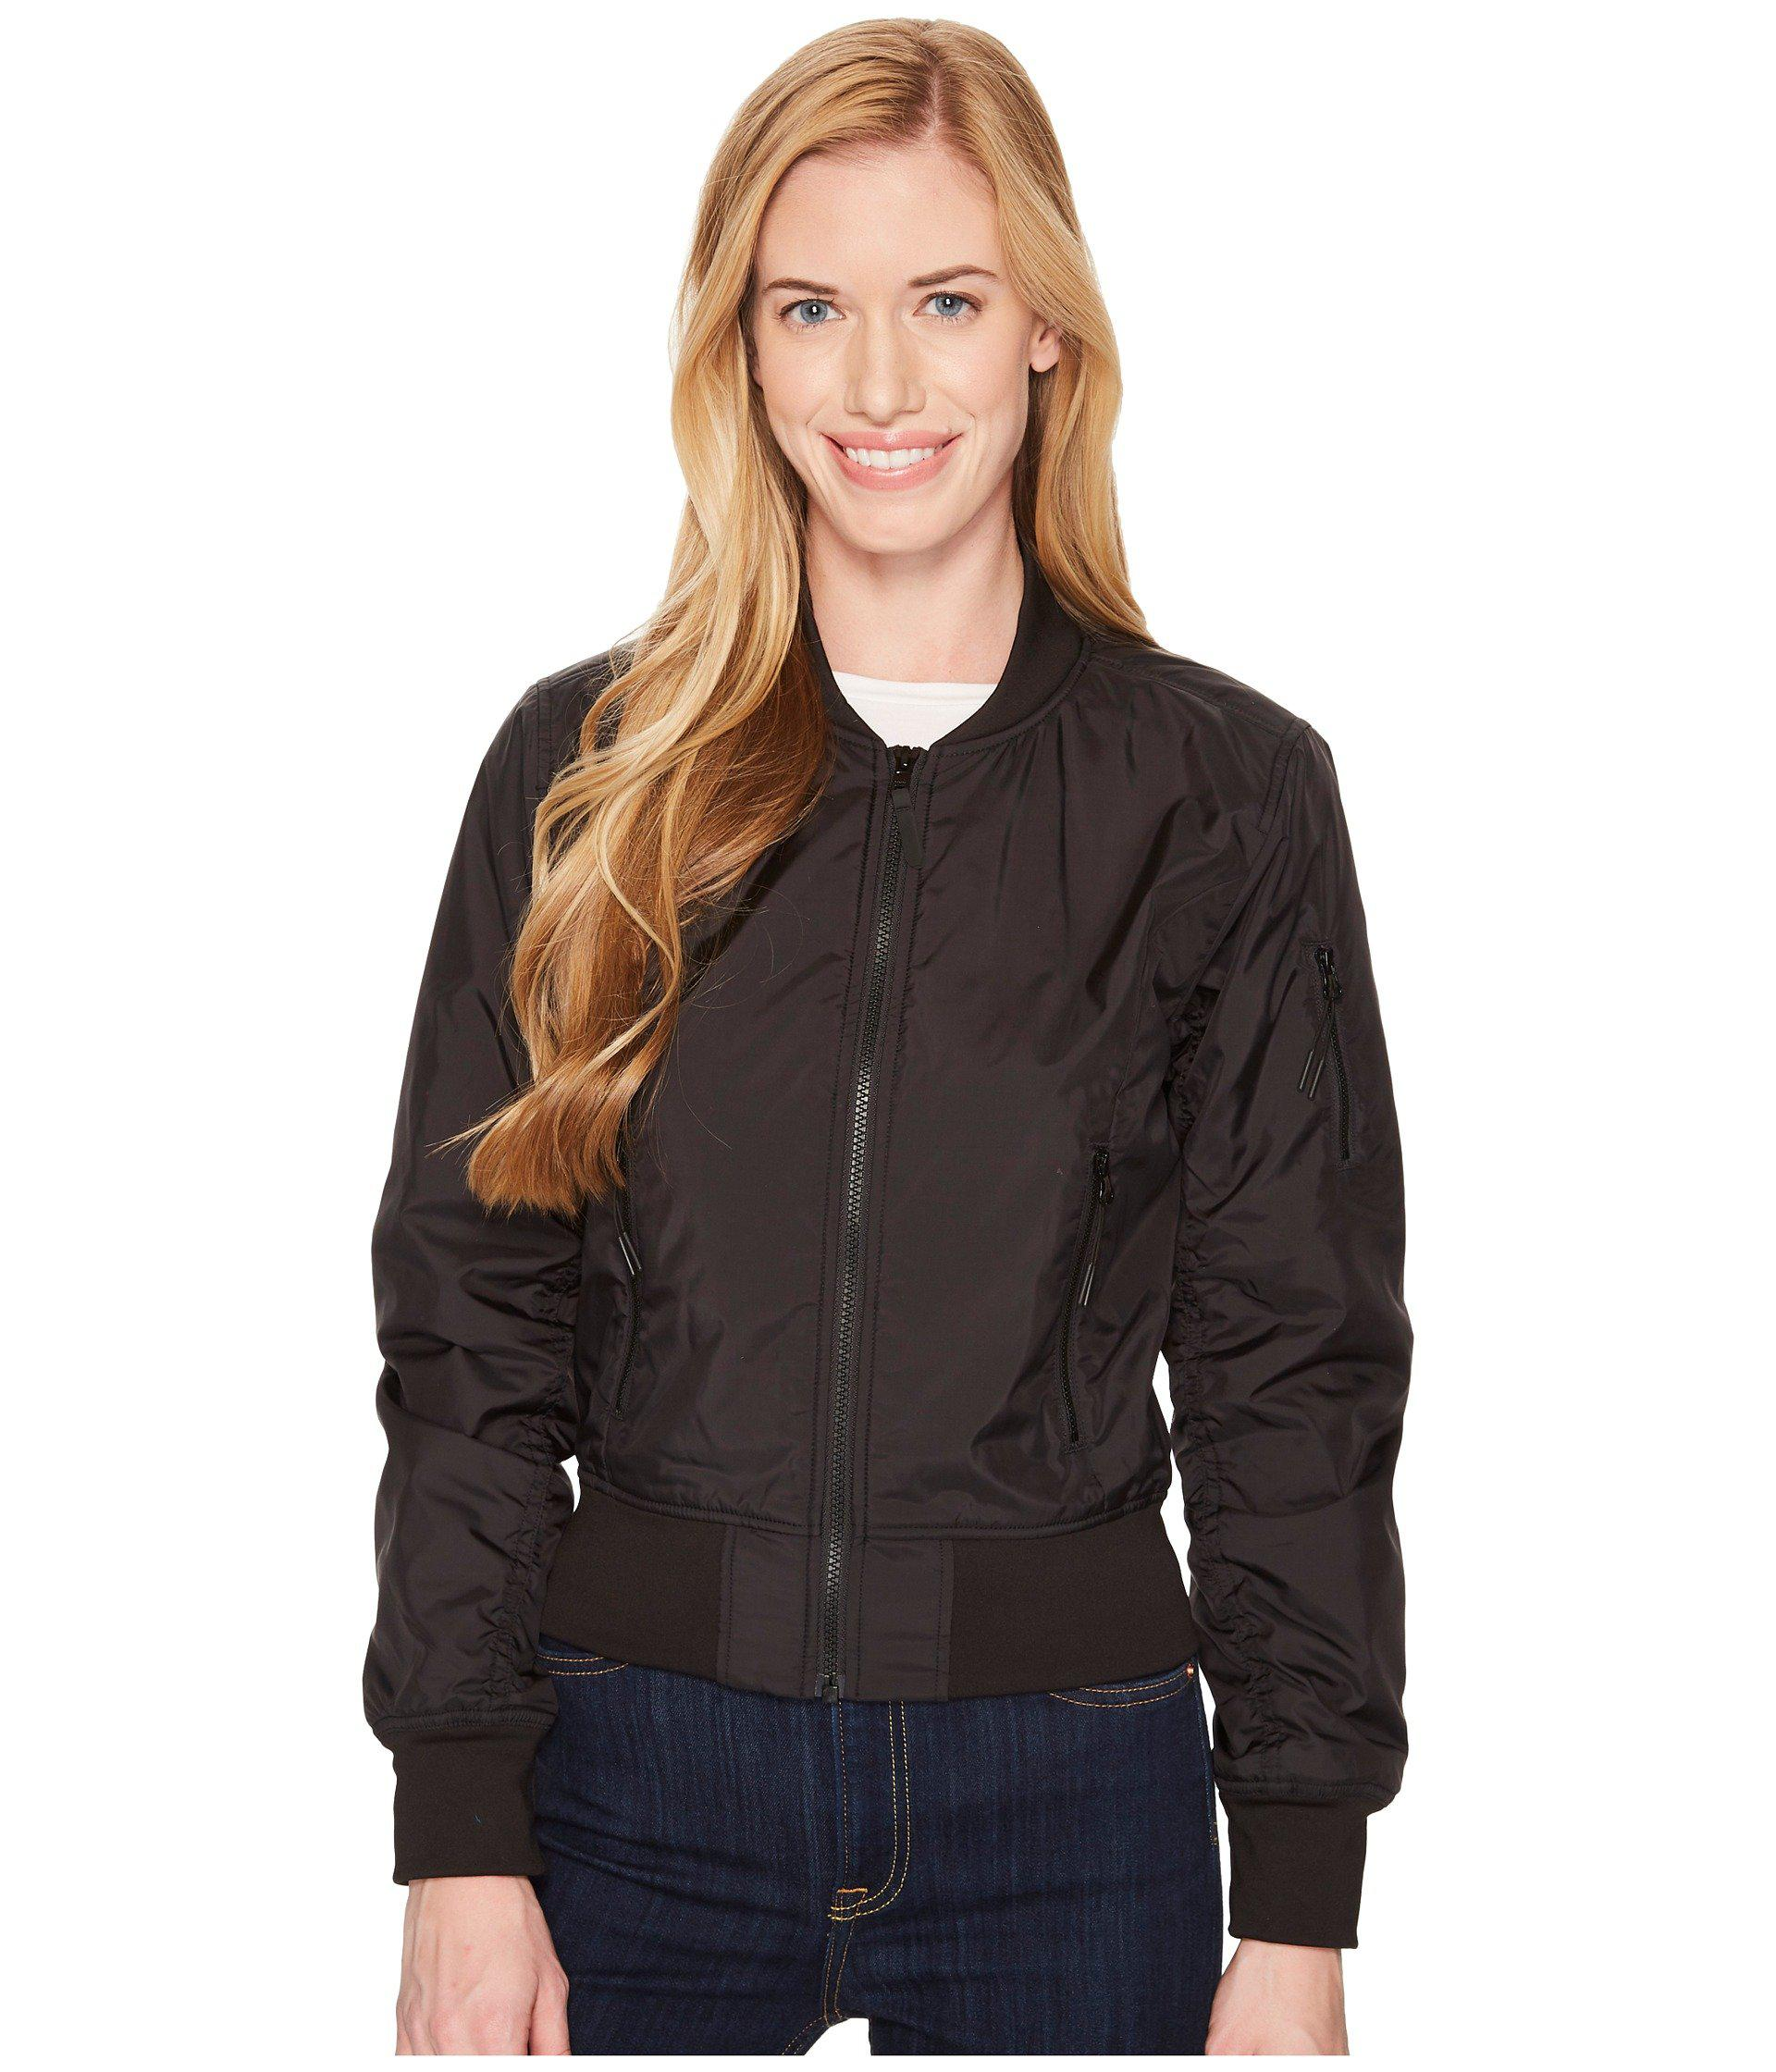 88cd583ce0 Lyst - The North Face Beyond The Wall Insulated Jacket in Black ...